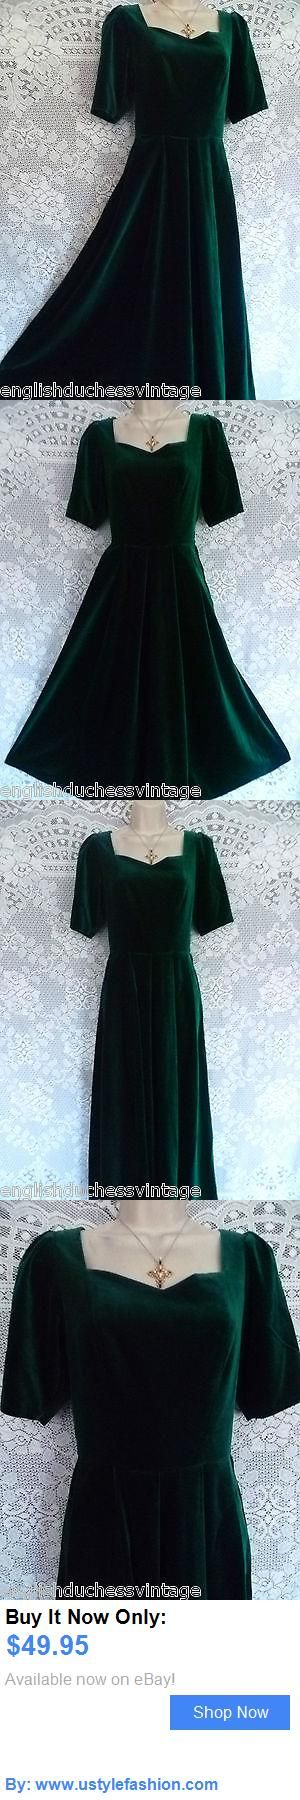 Women vintage reproductions: Vintage Laura Ashley Green Velvet Special Christmas Party Dress, Uk 8 (Label 12) BUY IT NOW ONLY: $49.95 #ustylefashionWomenvintagereproductions OR #ustylefashion